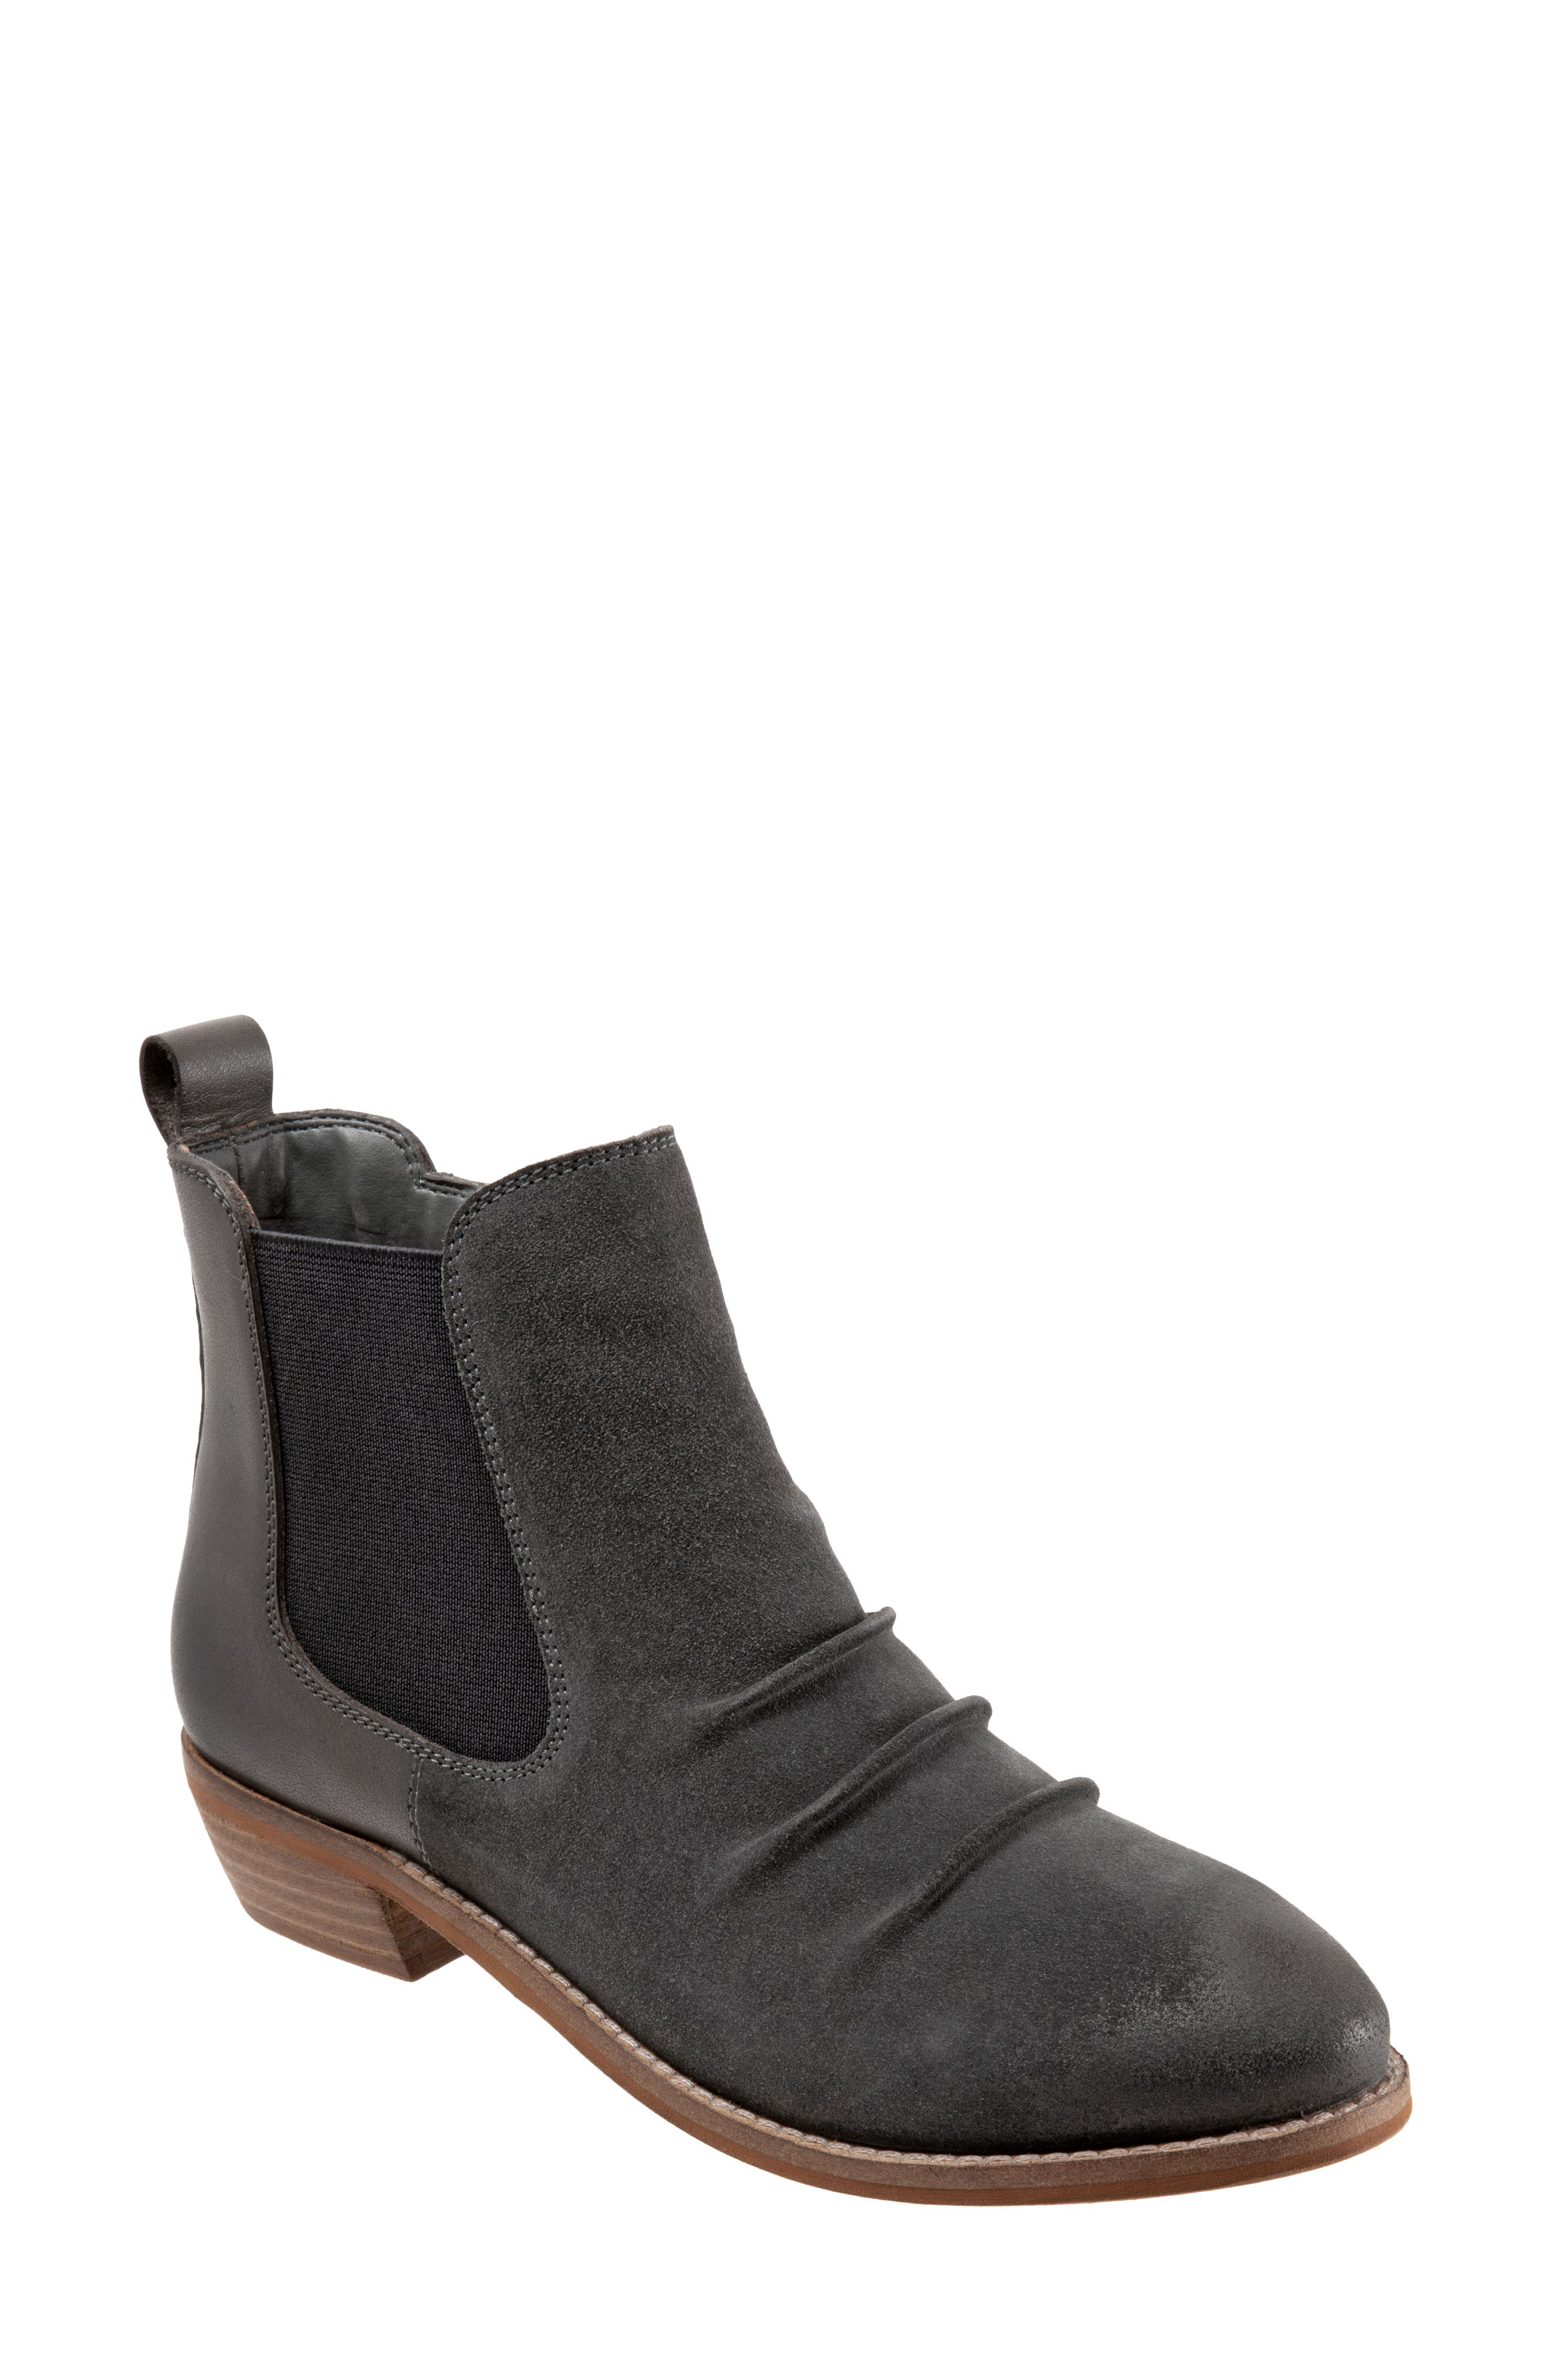 Ruched styling amplifies the casual-chic appeal of an updated Chelsea boot grounded by signature cushioning for everyday comfort. Style Name: Softwalk Rockford Chelsea Boot (Women). Style Number: 6128758. Available in stores.